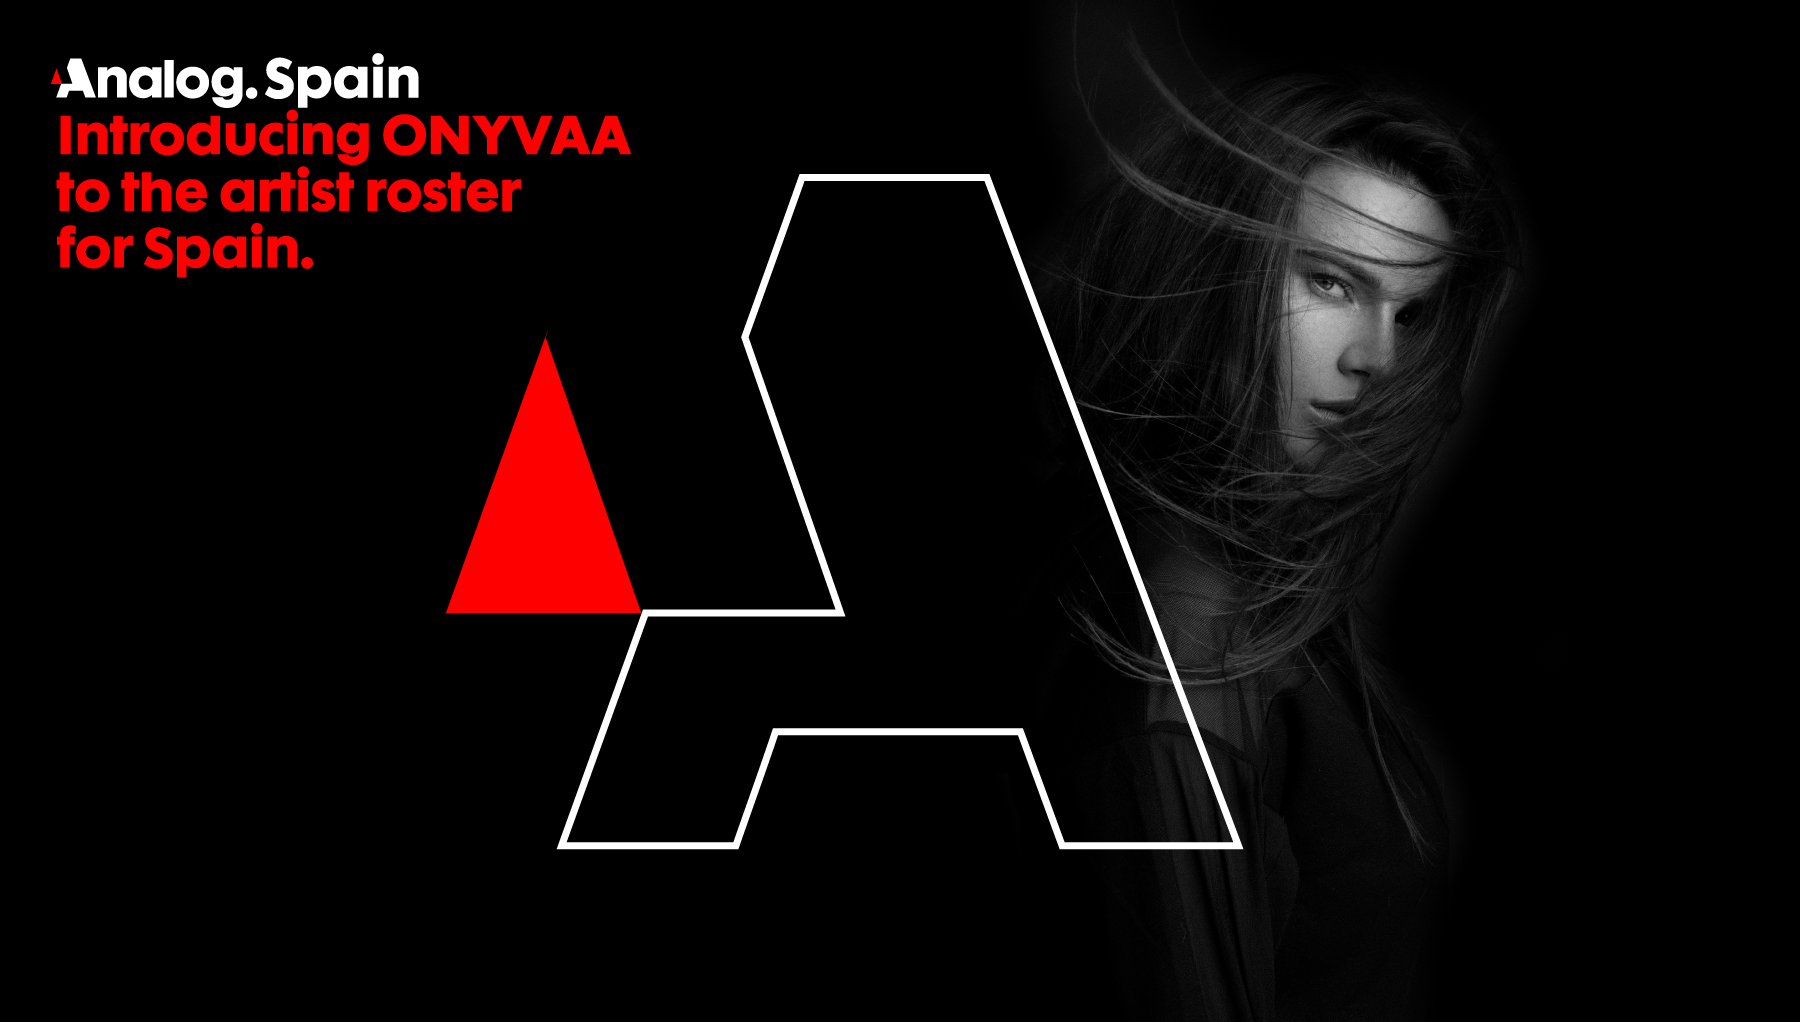 Introducing Onyvaa To The Artist Roster For Analog Spain